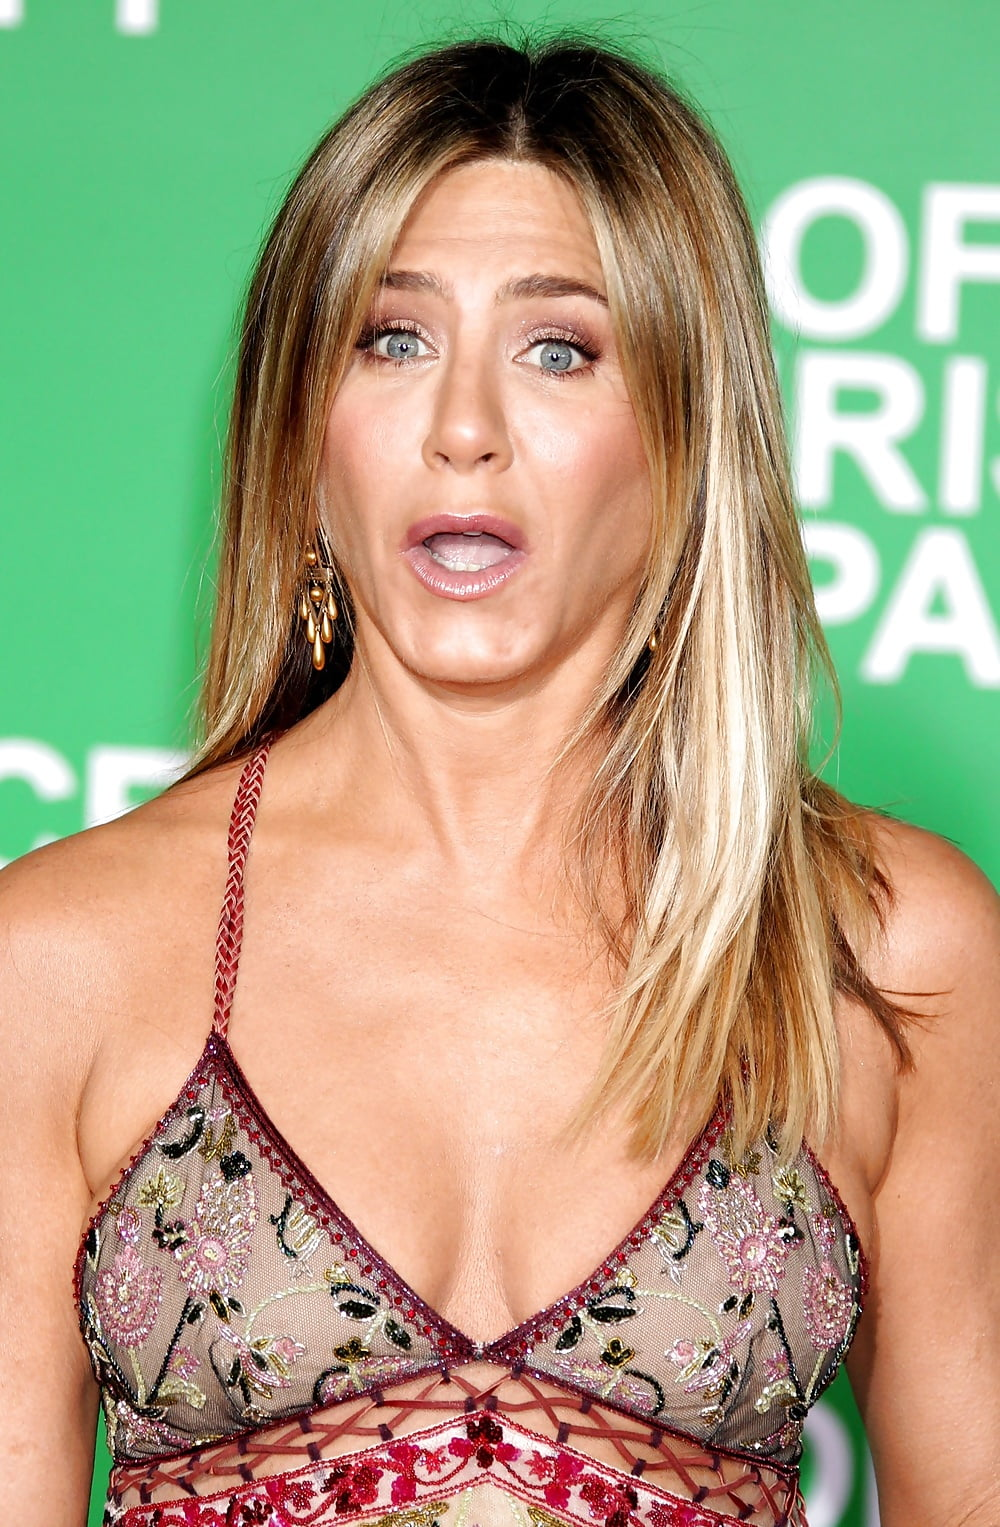 Porno date jennifer aniston pubes